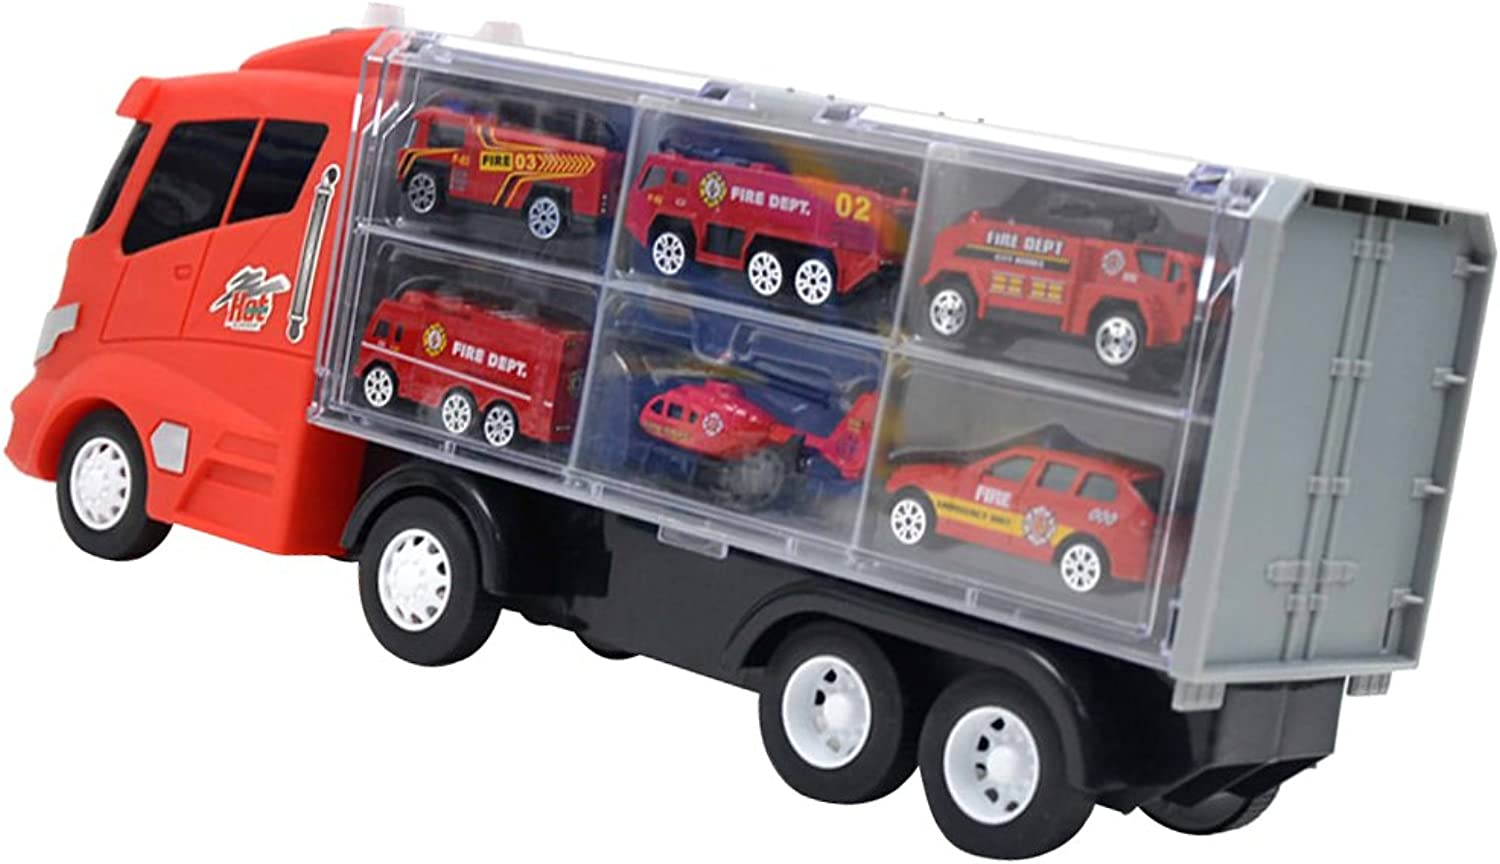 Baoblaze Alloy Diecast Vehicle Set, 6 Fire Engine Cars with a Red Container Truck, Kids Creative Toy 7pcs Set